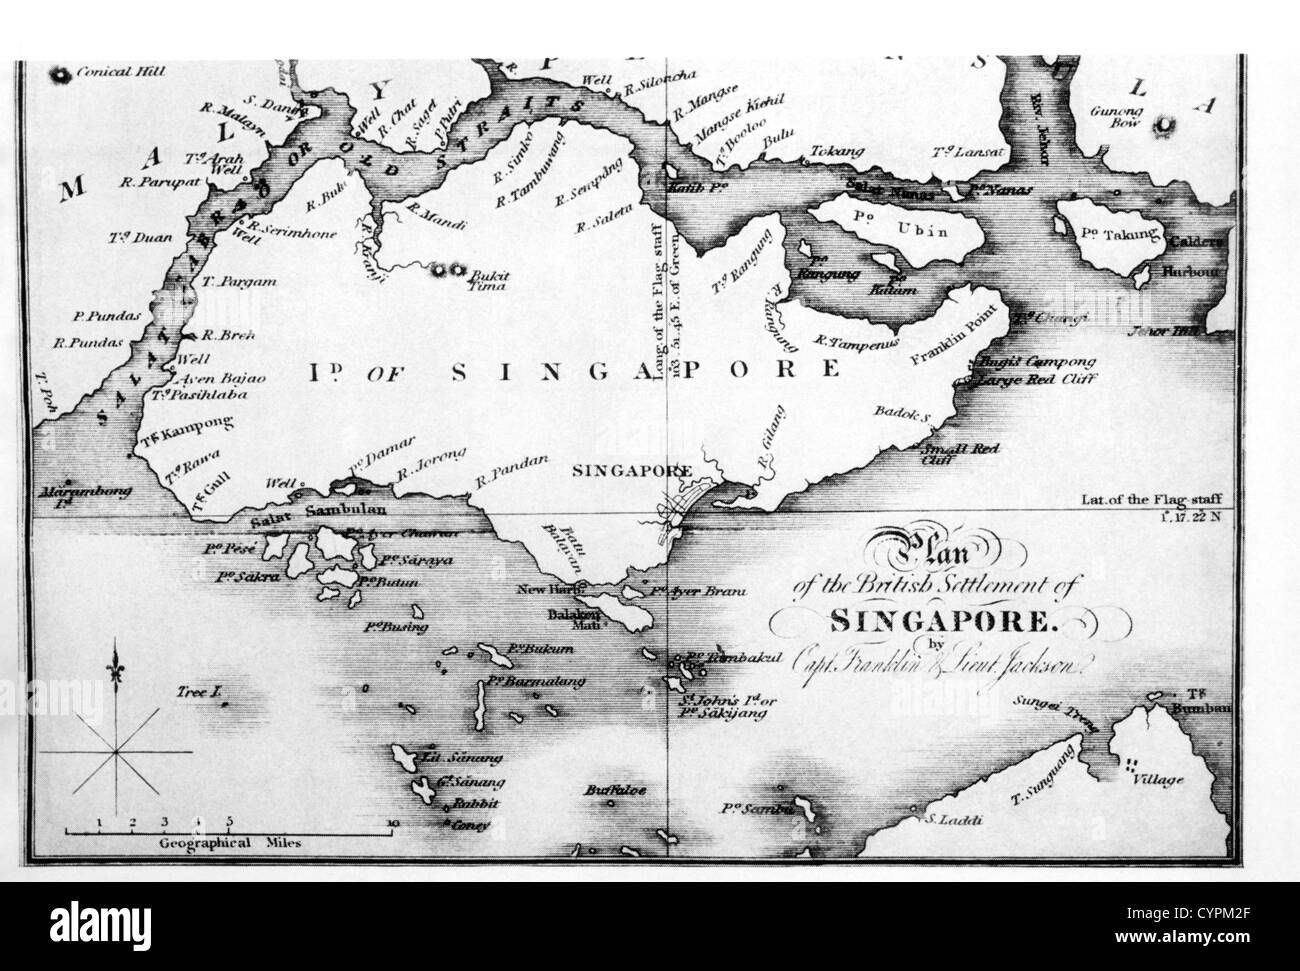 Map of the Island of Singapore from J. Crawford's 'Embassy to Siam', 1828 - Stock Image